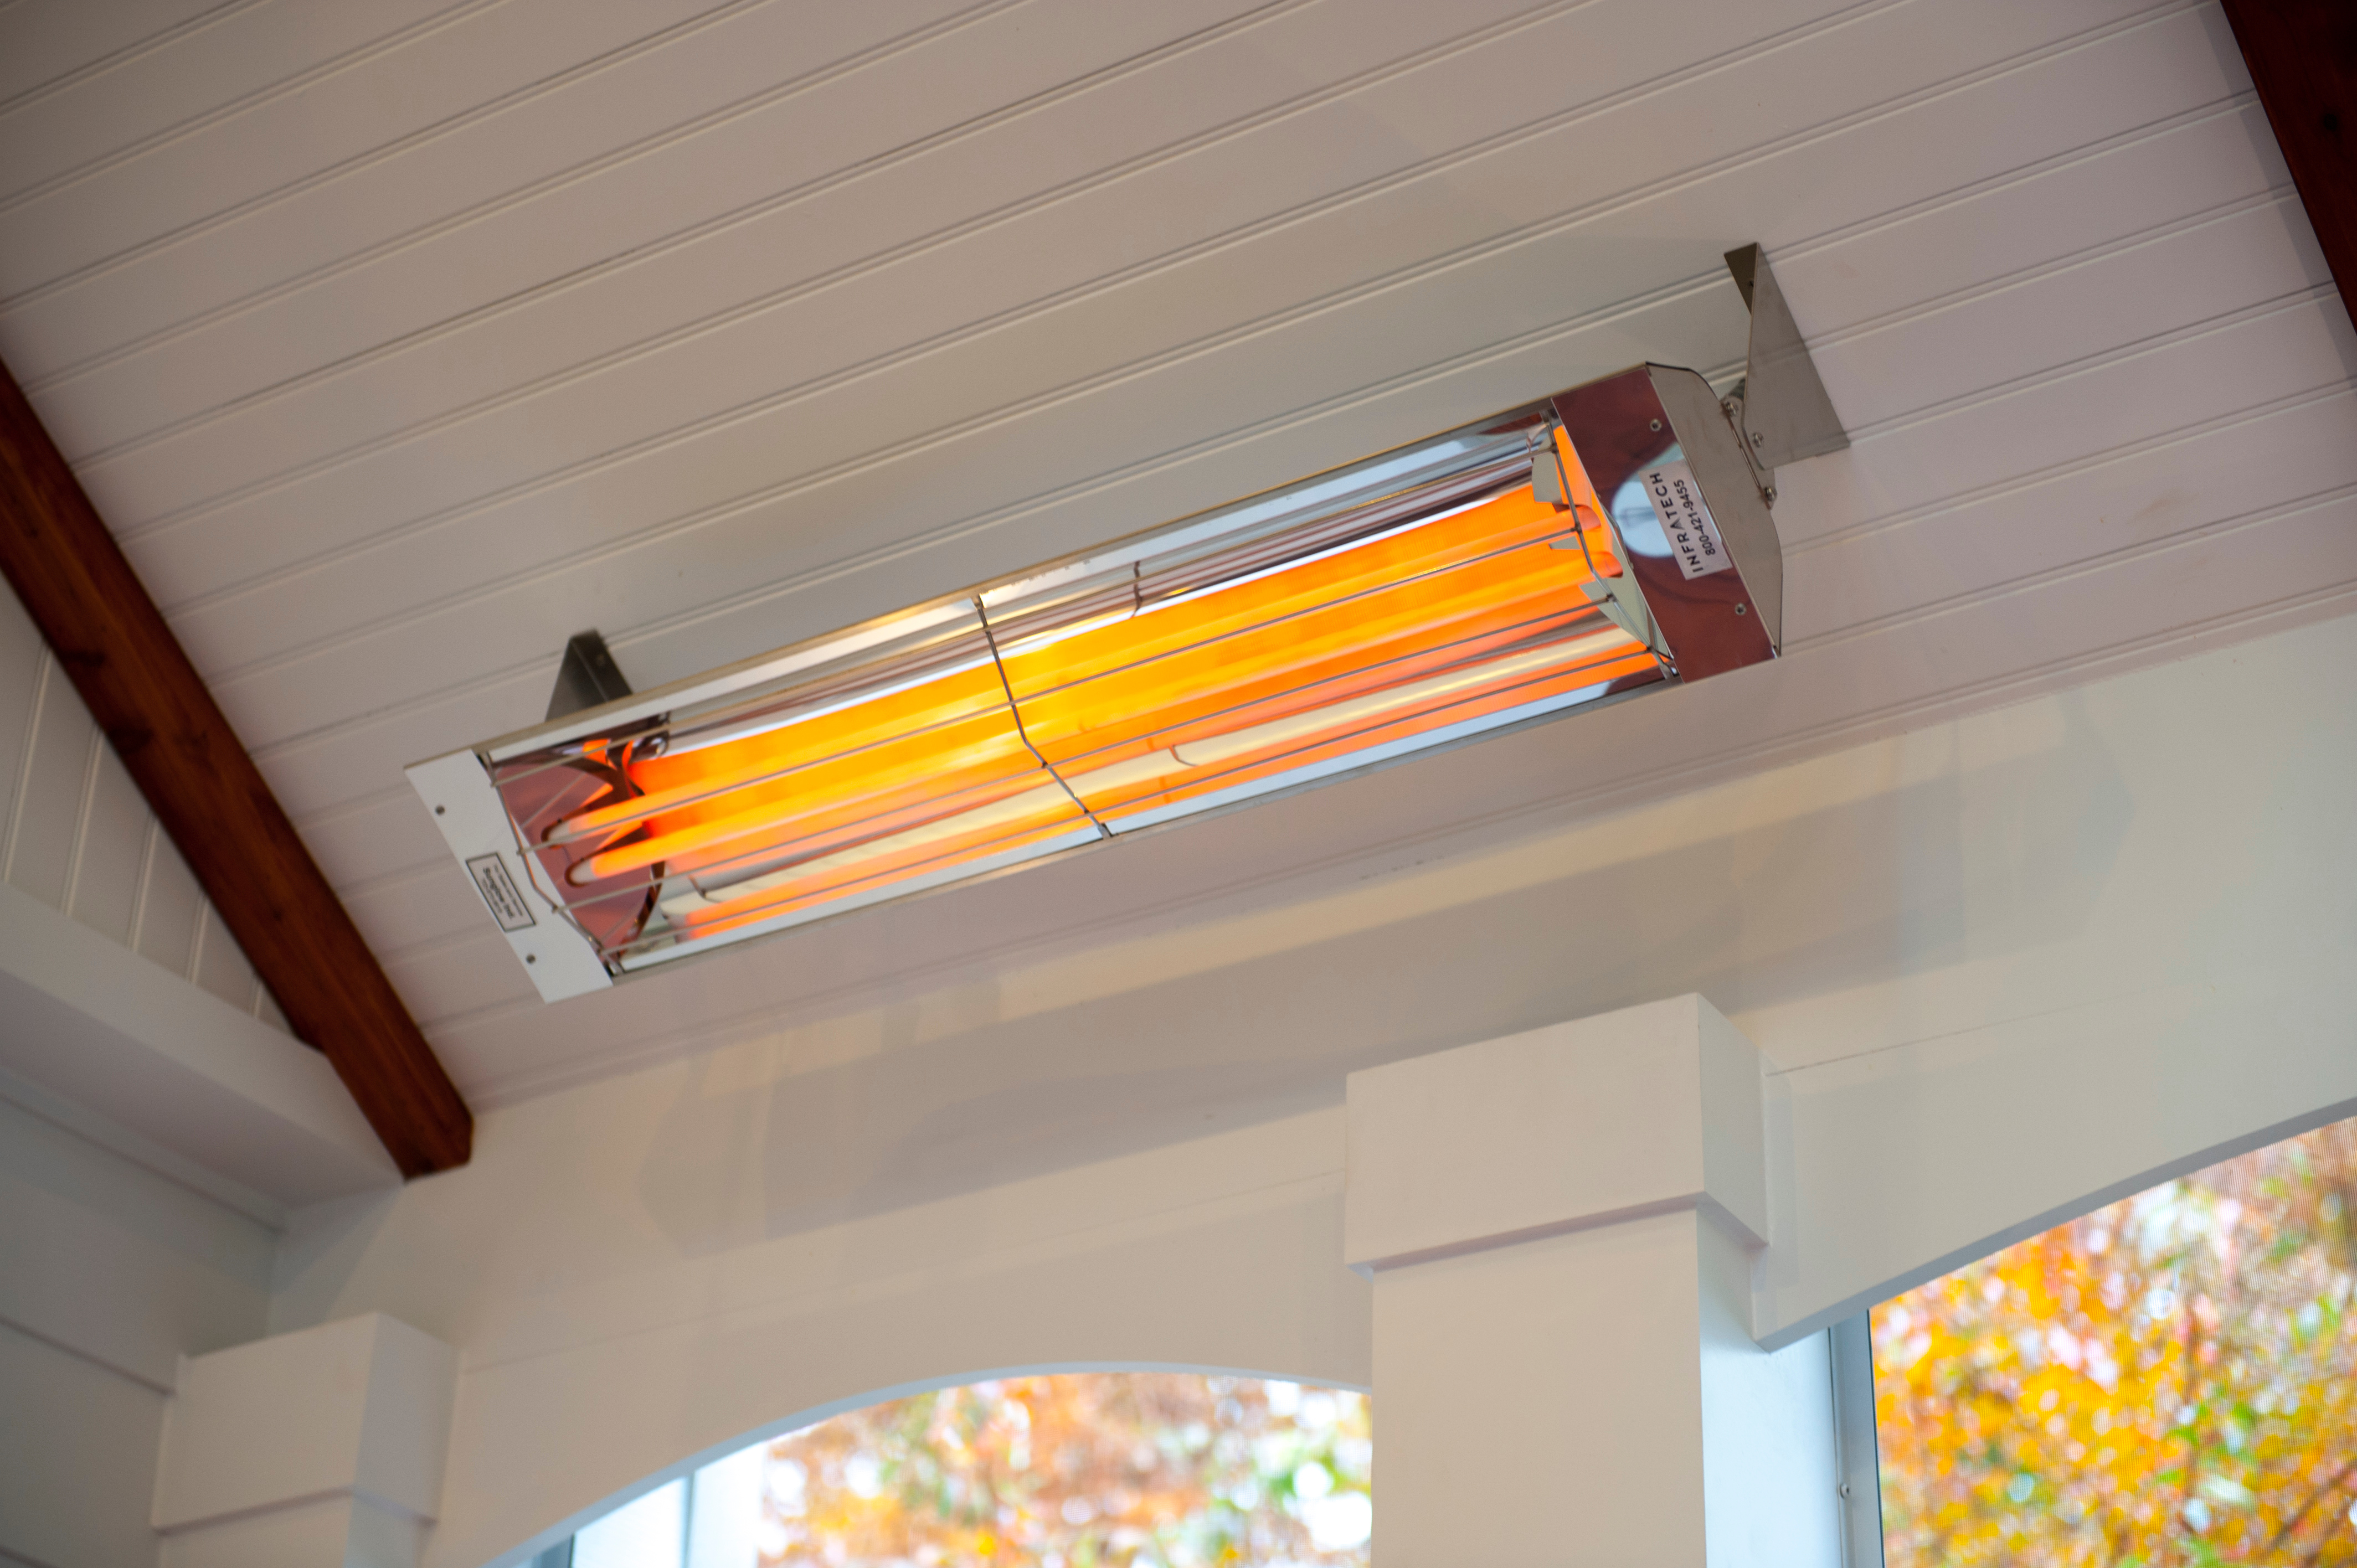 What Are The Benefits Of Adding Infrared Heaters To A